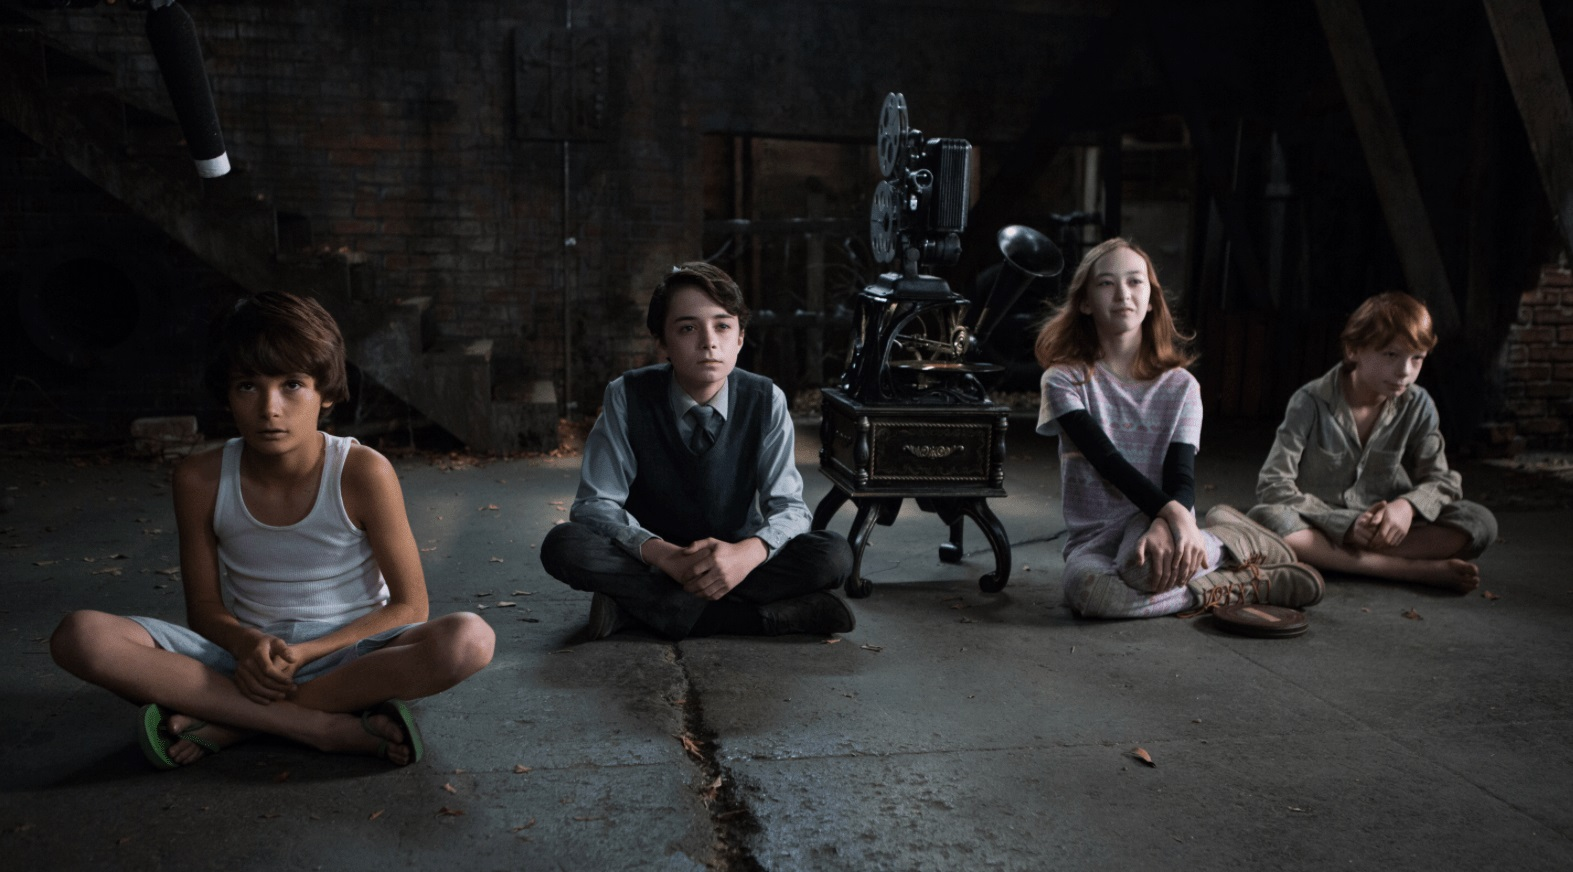 The children sit down to watch 8mm films in Sinister 2 (2015) poster